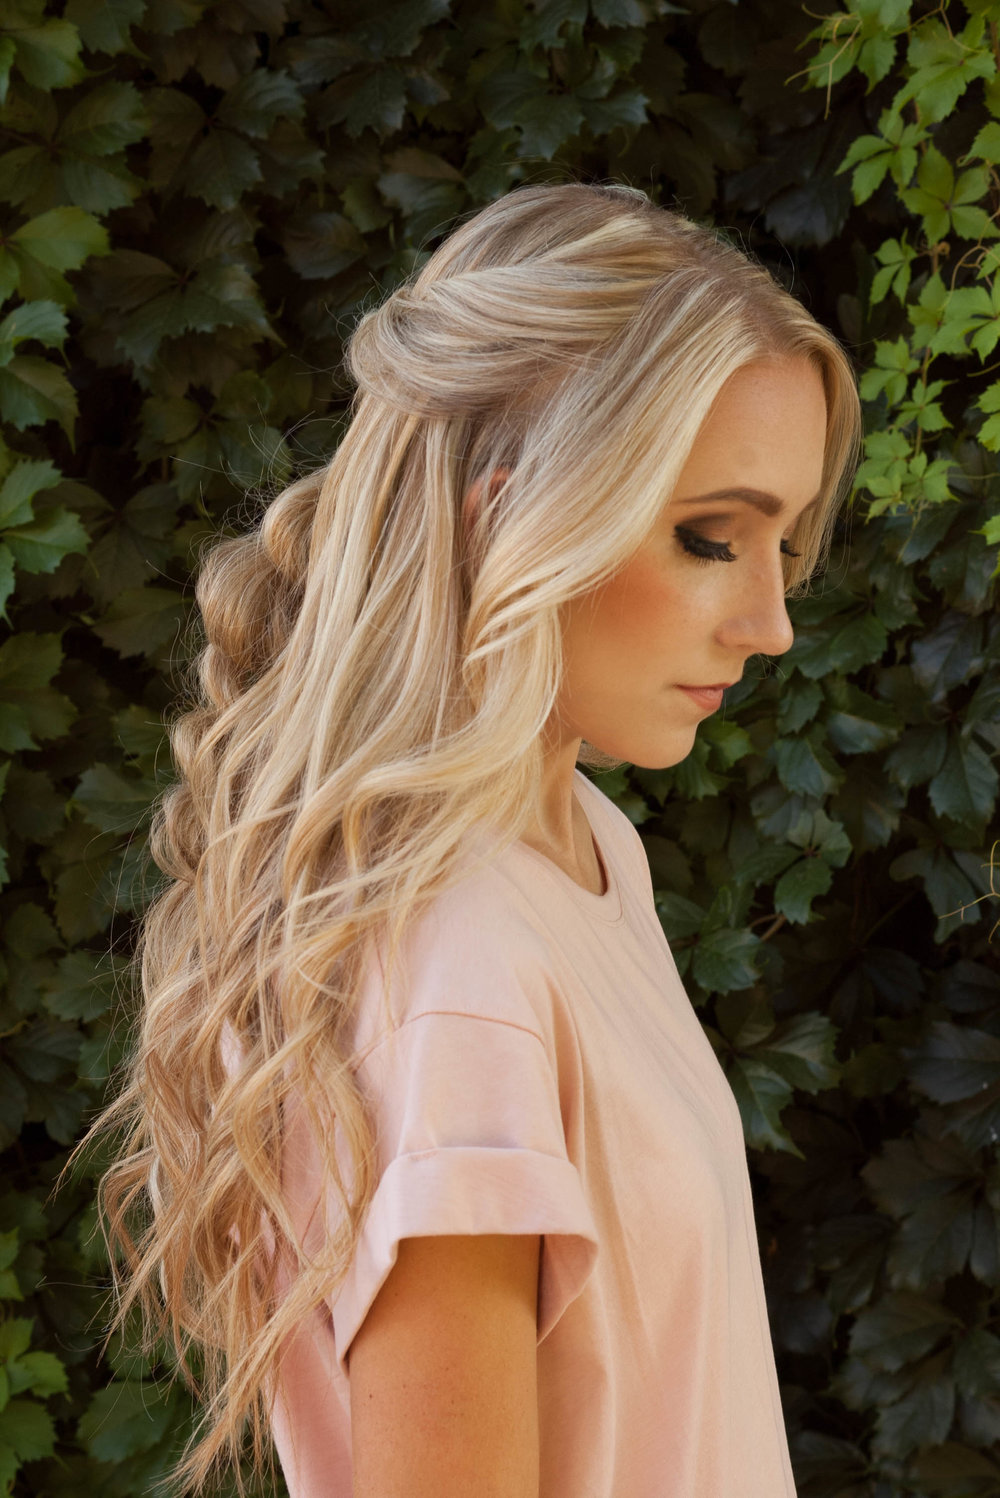 Talia Whatcott Makeup Artist Utah County Pretty Pageant Makeup and Pull Through Braid Tousled Curls-14.jpg